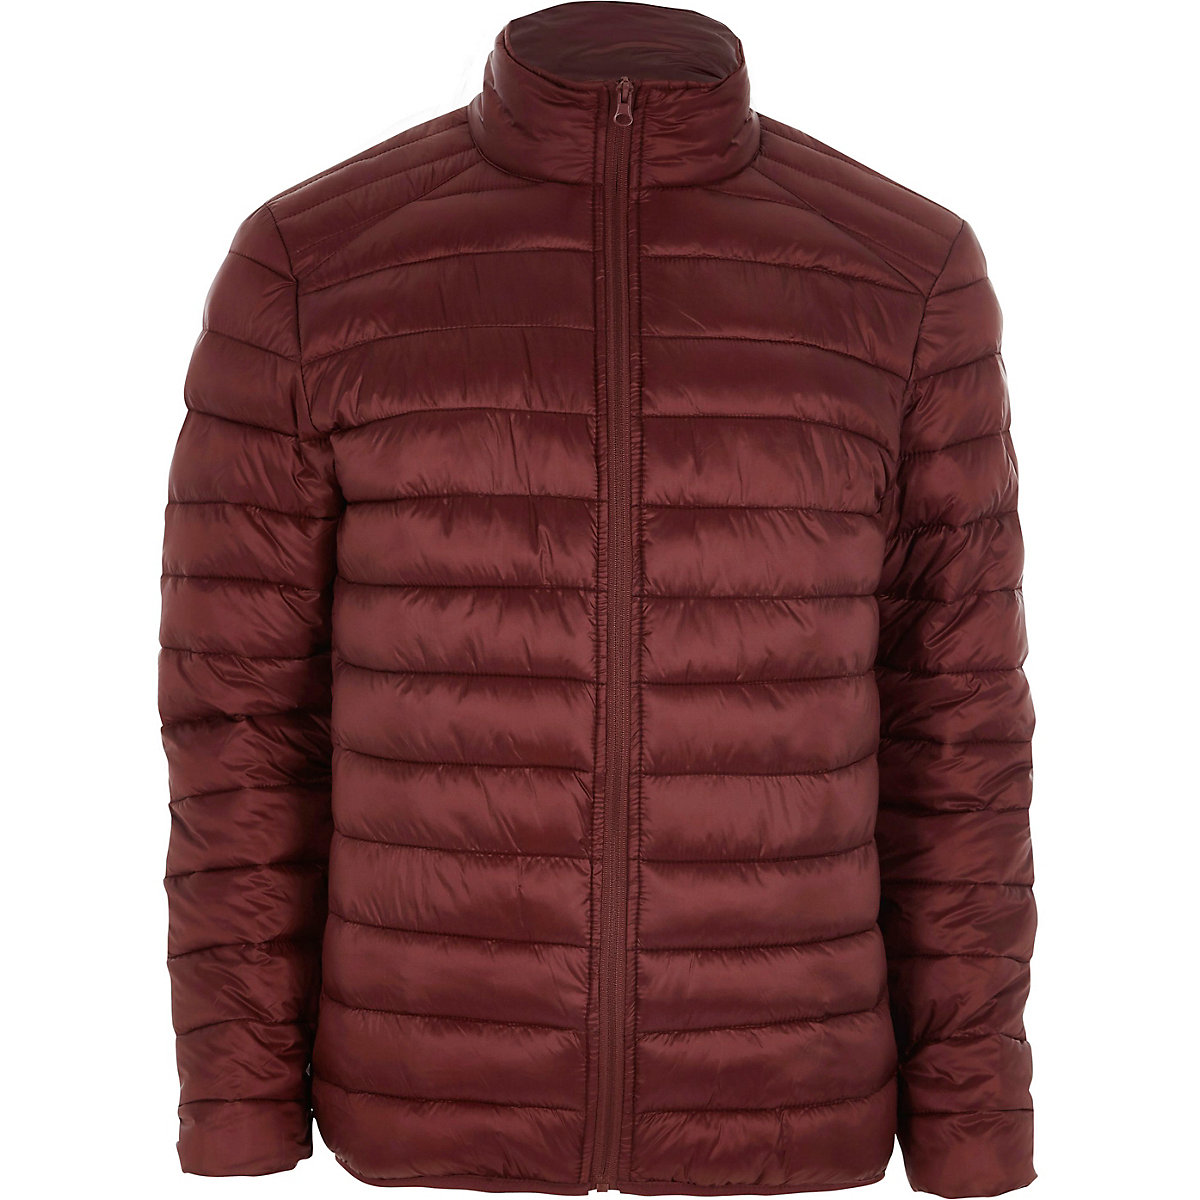 Red funnel neck puffer jacket